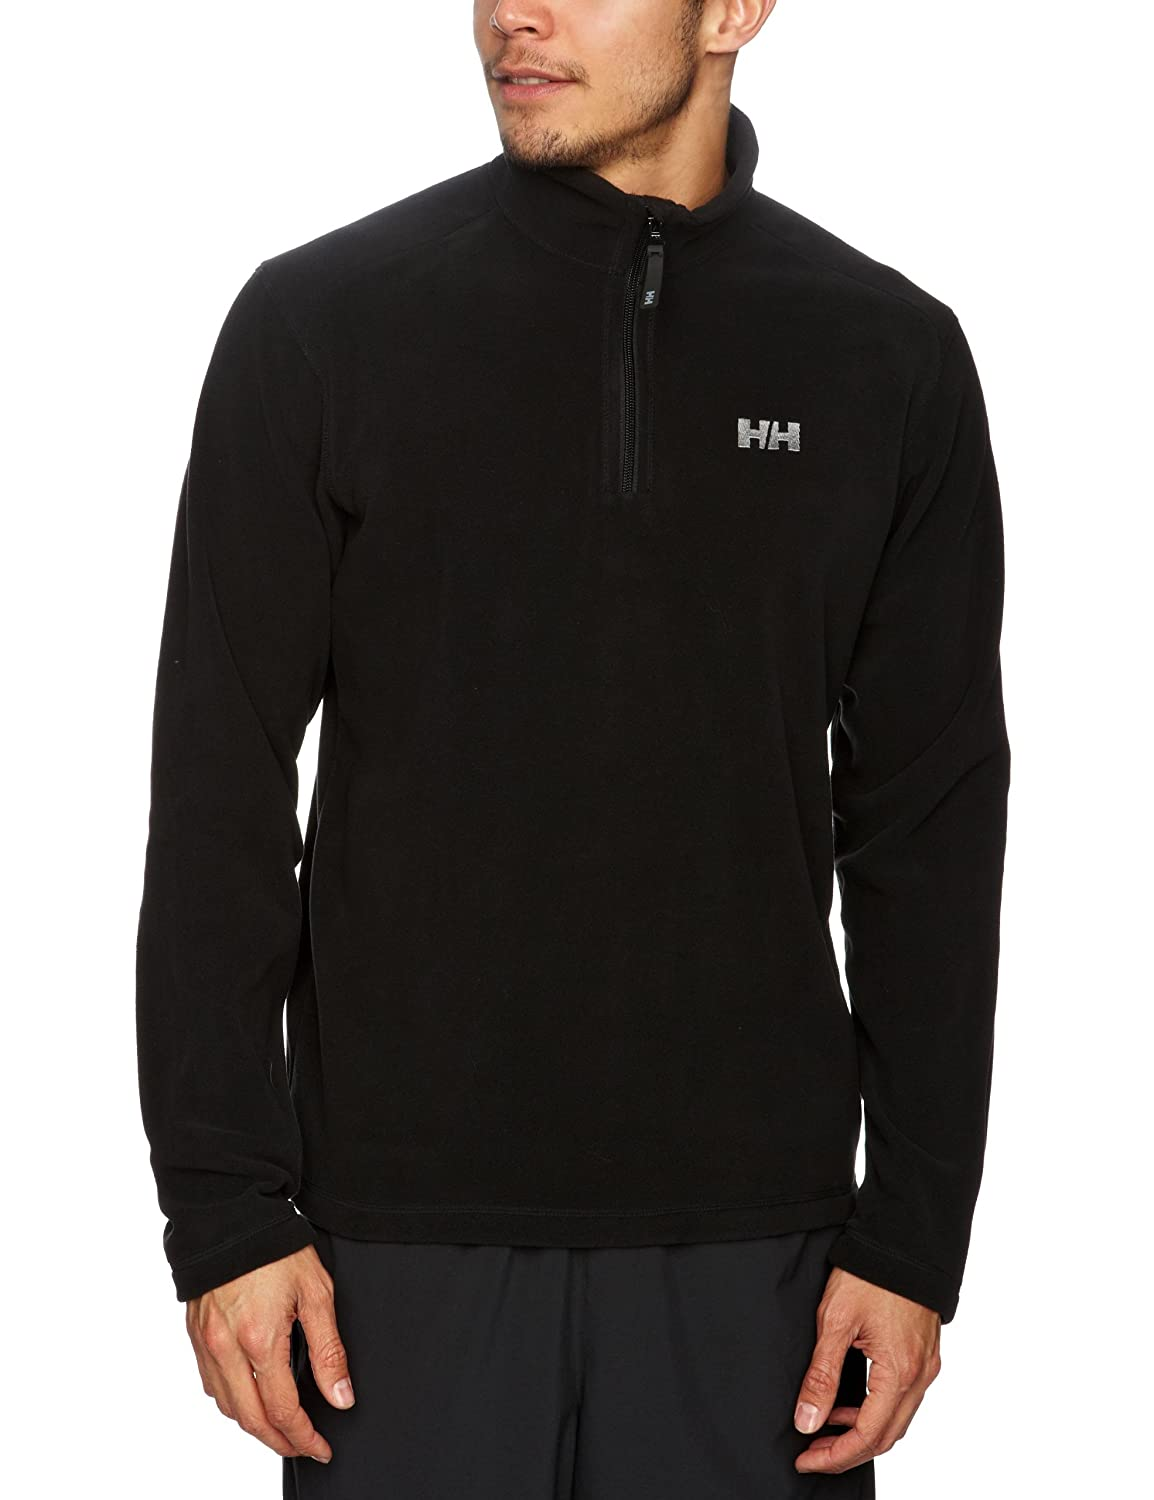 Amazon.com: Helly Hansen Women's Daybreaker Half Zip Fleece ...